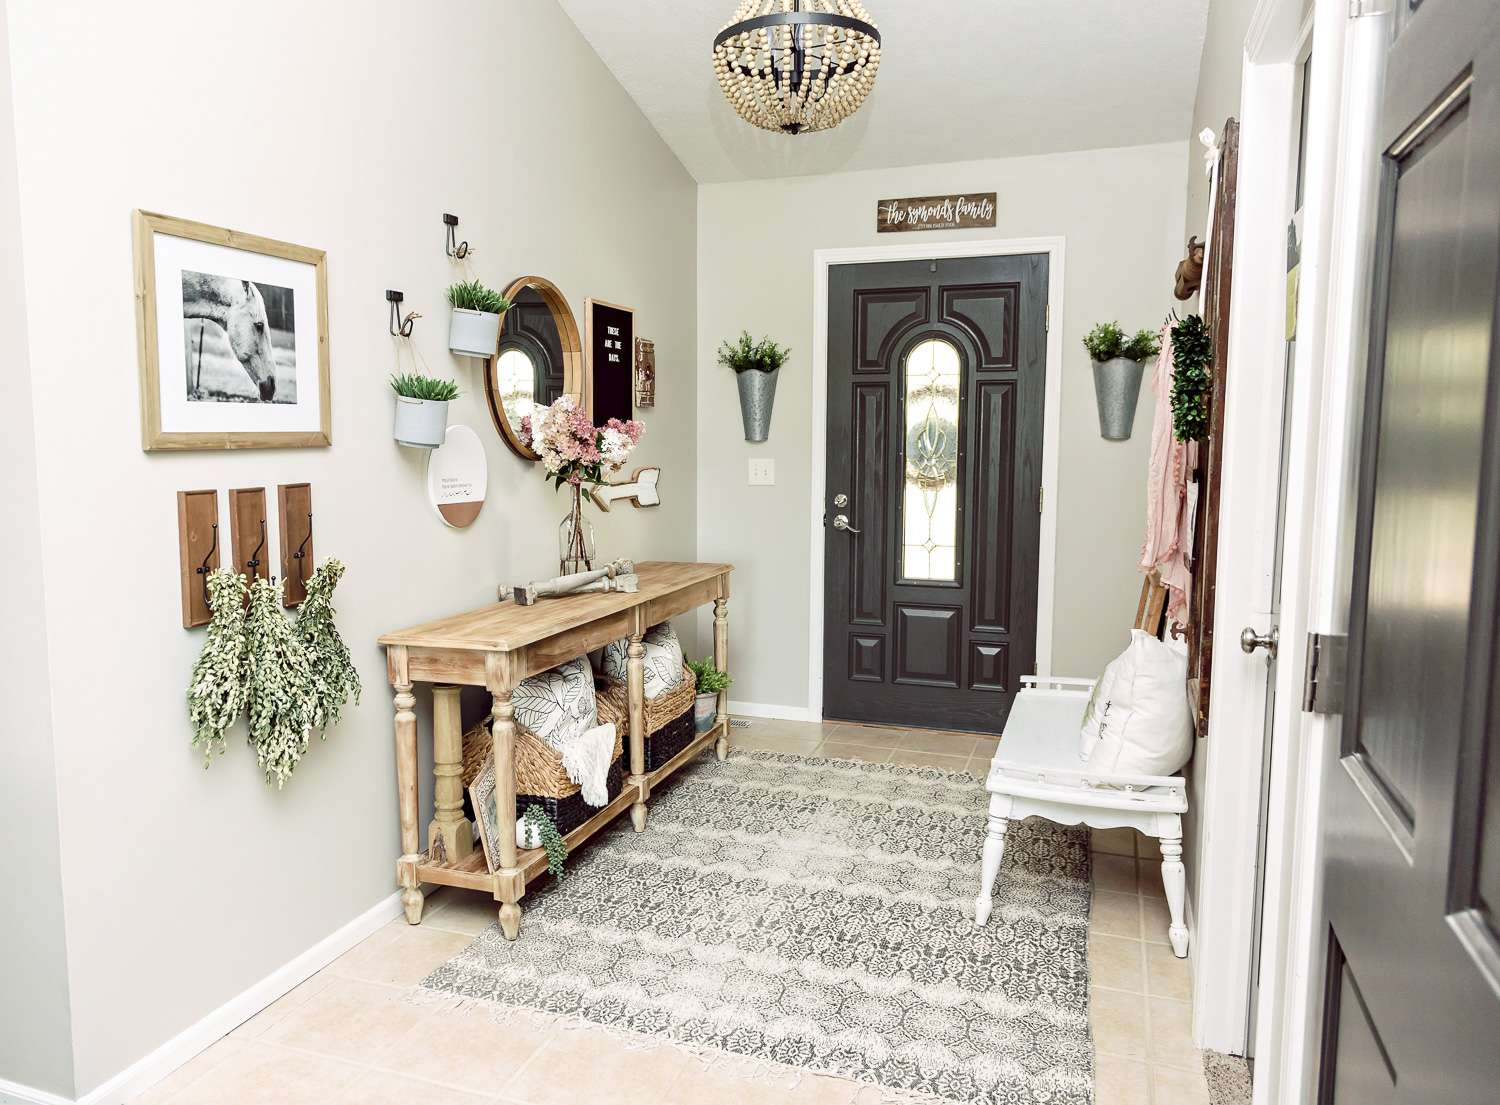 A Style Guide for the modern farmhouse designer. | Grace In My Space